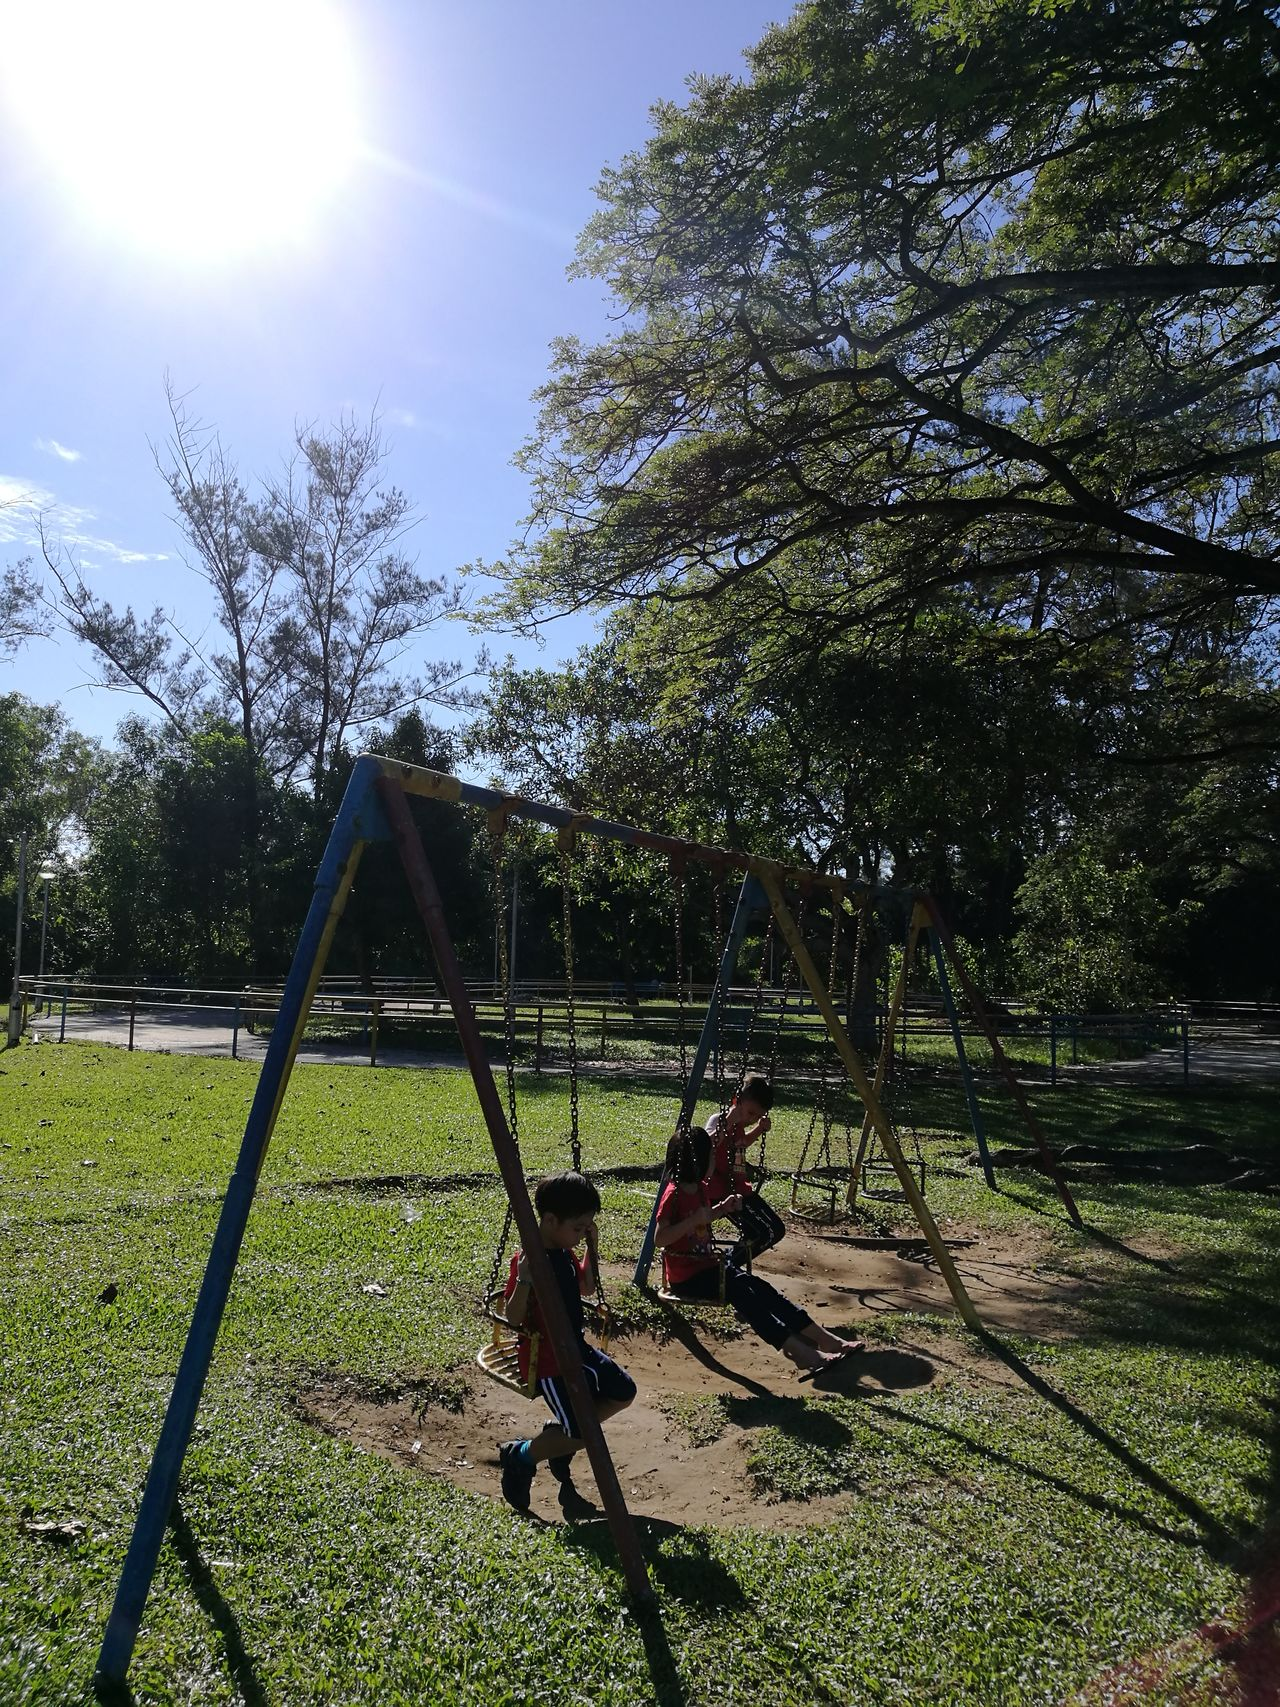 Prince Philip Park, Kota Kinabalu will soon be gone.. Tanjungarubeach Kotakinabalu Beachfront Tree Playground Park - Man Made Space Outdoors Childhood Sky Outdoor Play Equipment Slide - Play Equipment Nature Grass Kids Being Kids No People Day